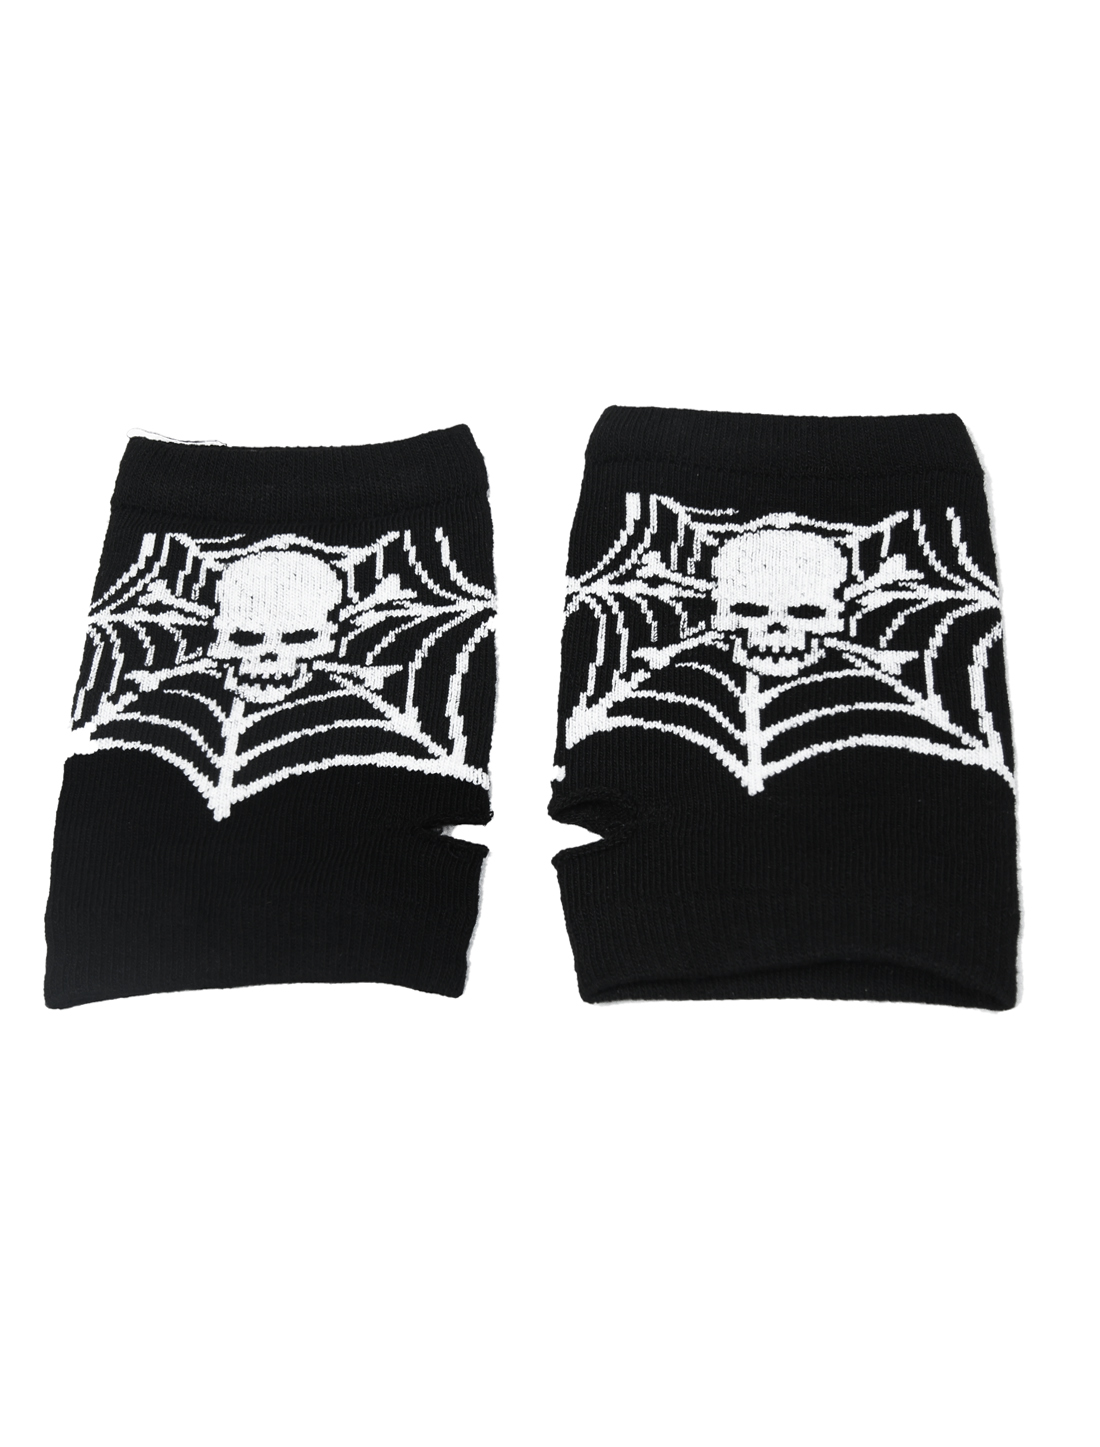 Lady White Skull Spider Net Pattern Black Thumbhole Gloves Pair